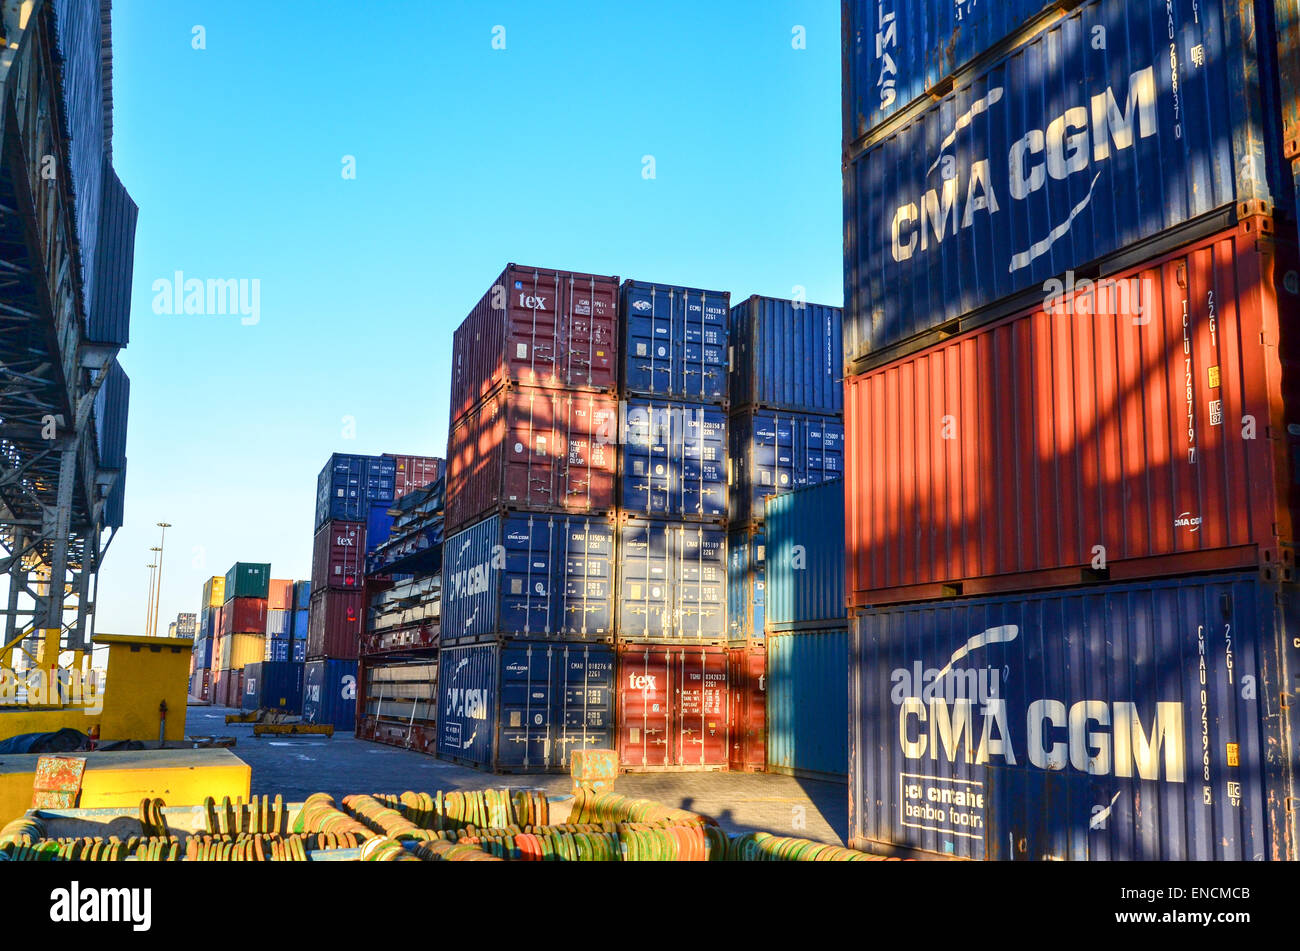 Maersk and CMA-CGM containers at the container terminal of the port of Walvis Bay, Namibia - Stock Image